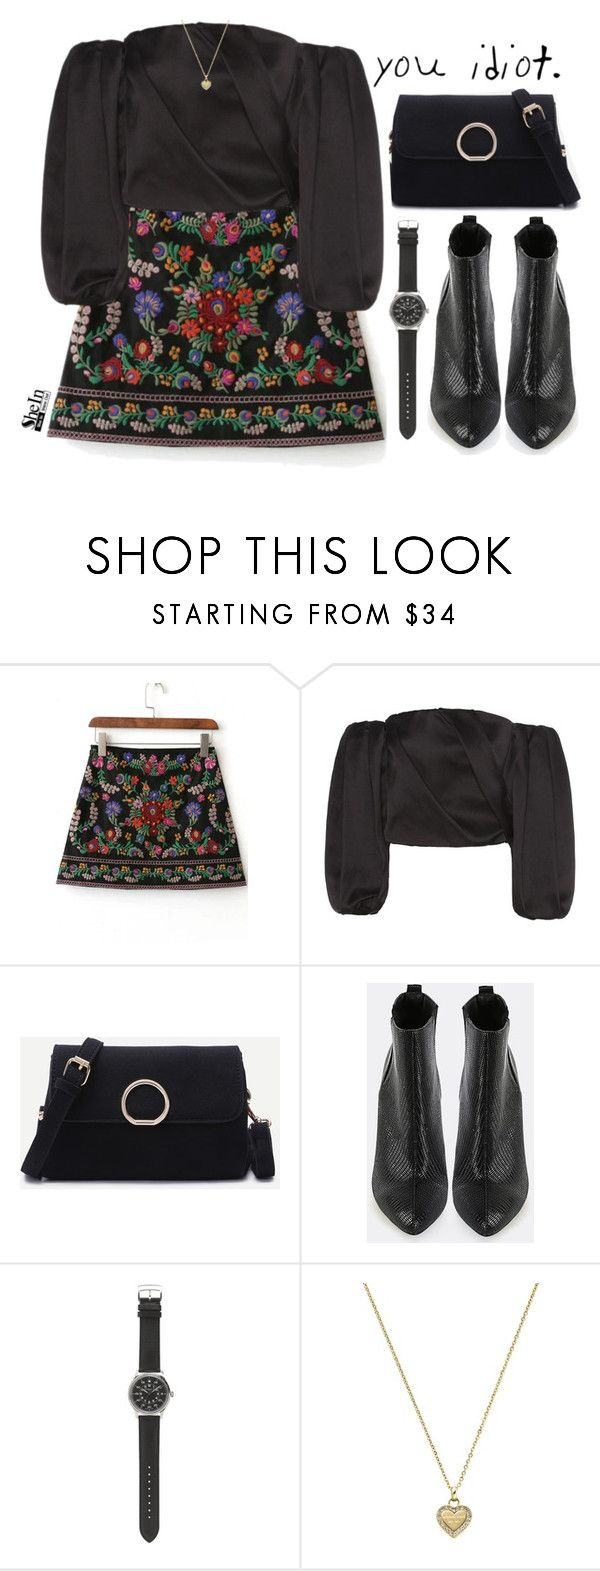 """""""you idiot"""" by m-zineta ❤ liked on Polyvore featuring The Row, J.Crew and Michael Kors"""